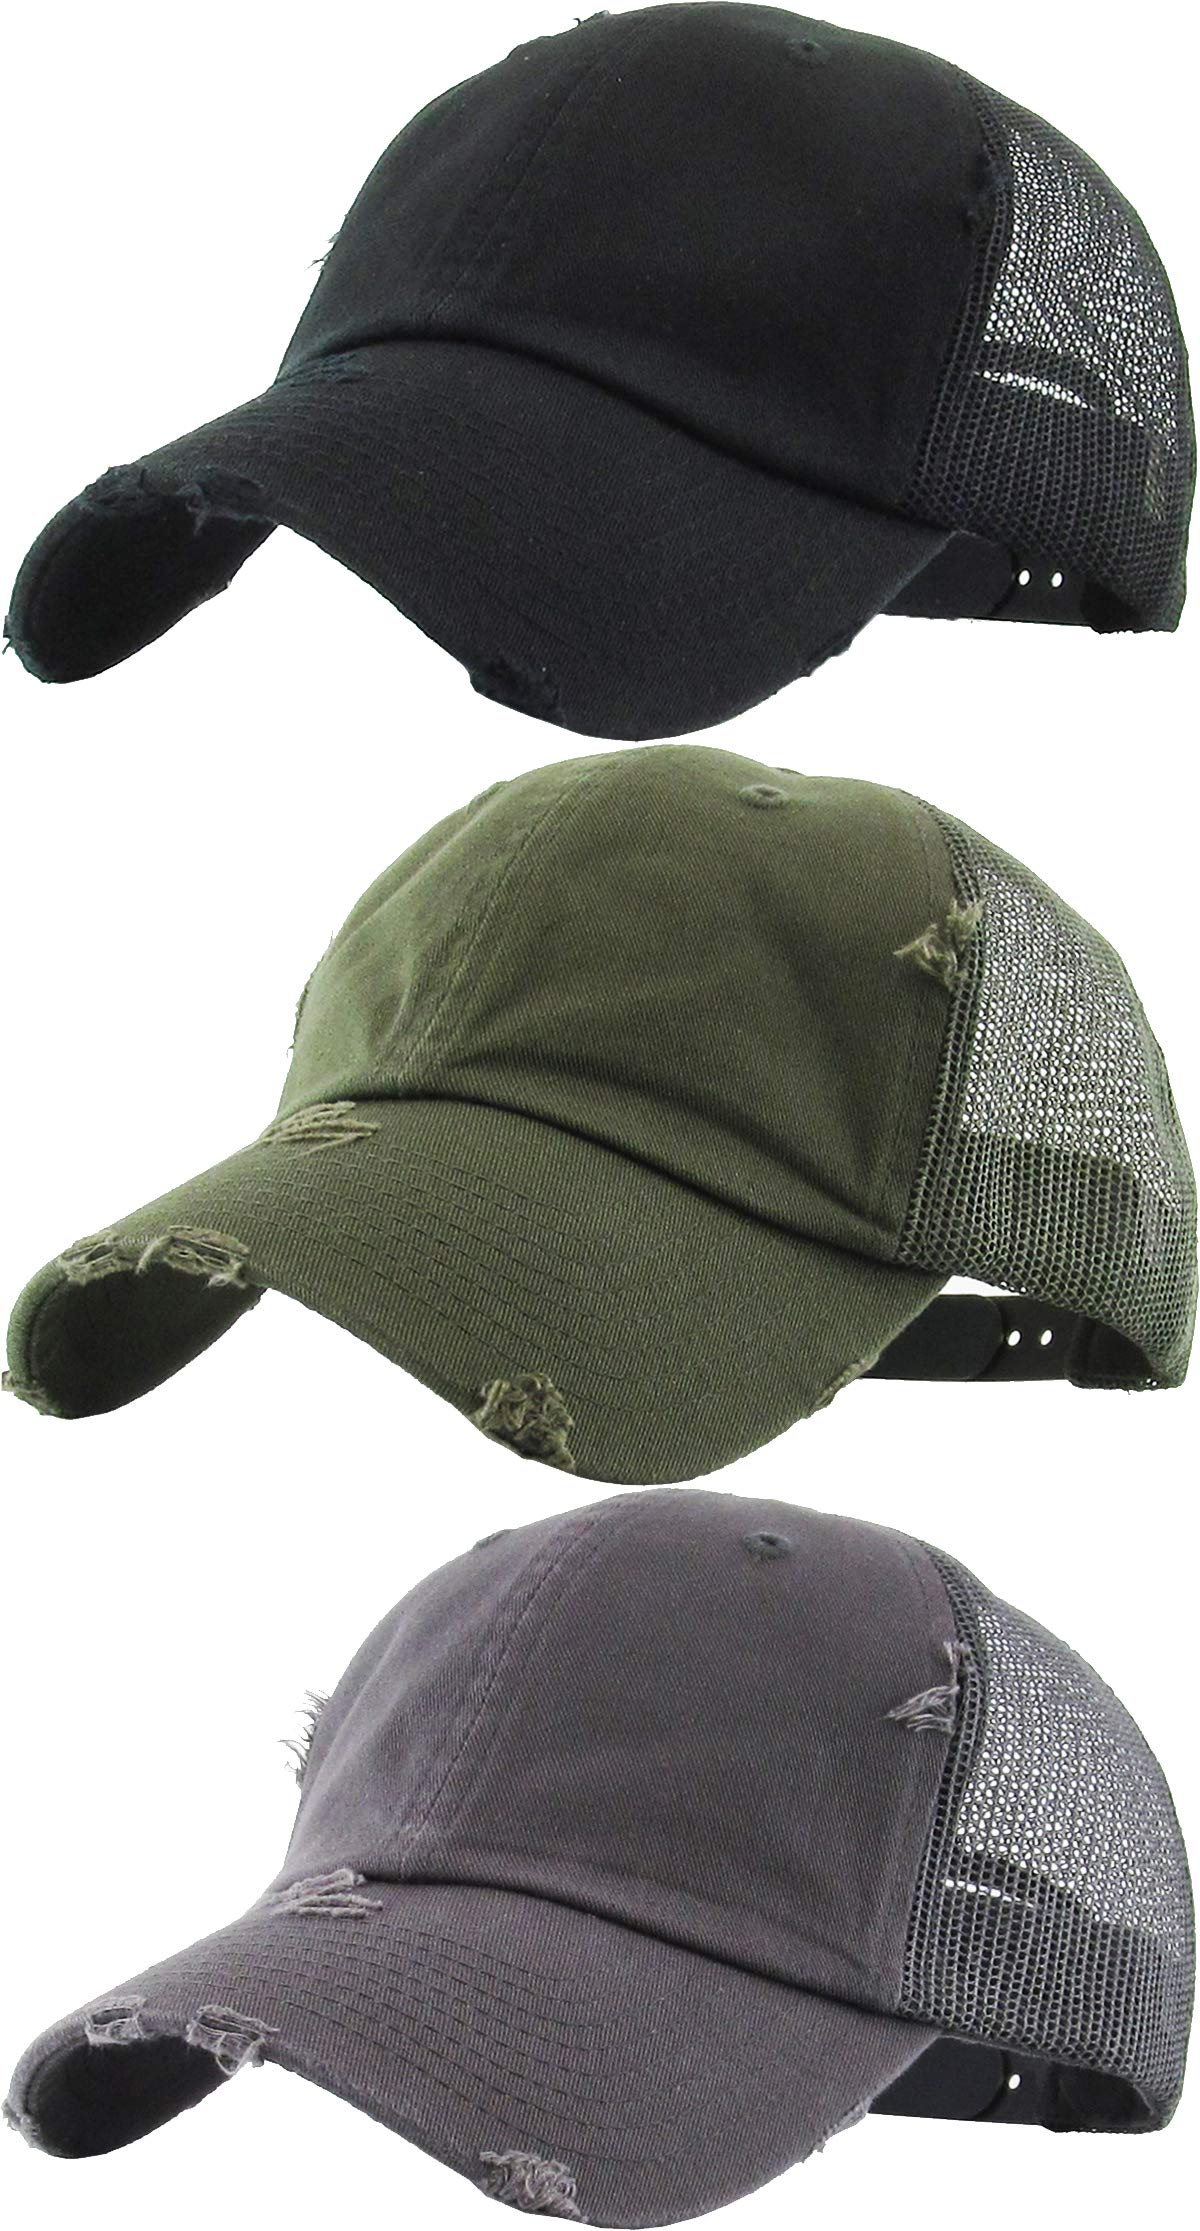 H-6140-3-K063370 Distressed Trucker Hat 3-Pack: Black, Olive, Grey by Funky Junque